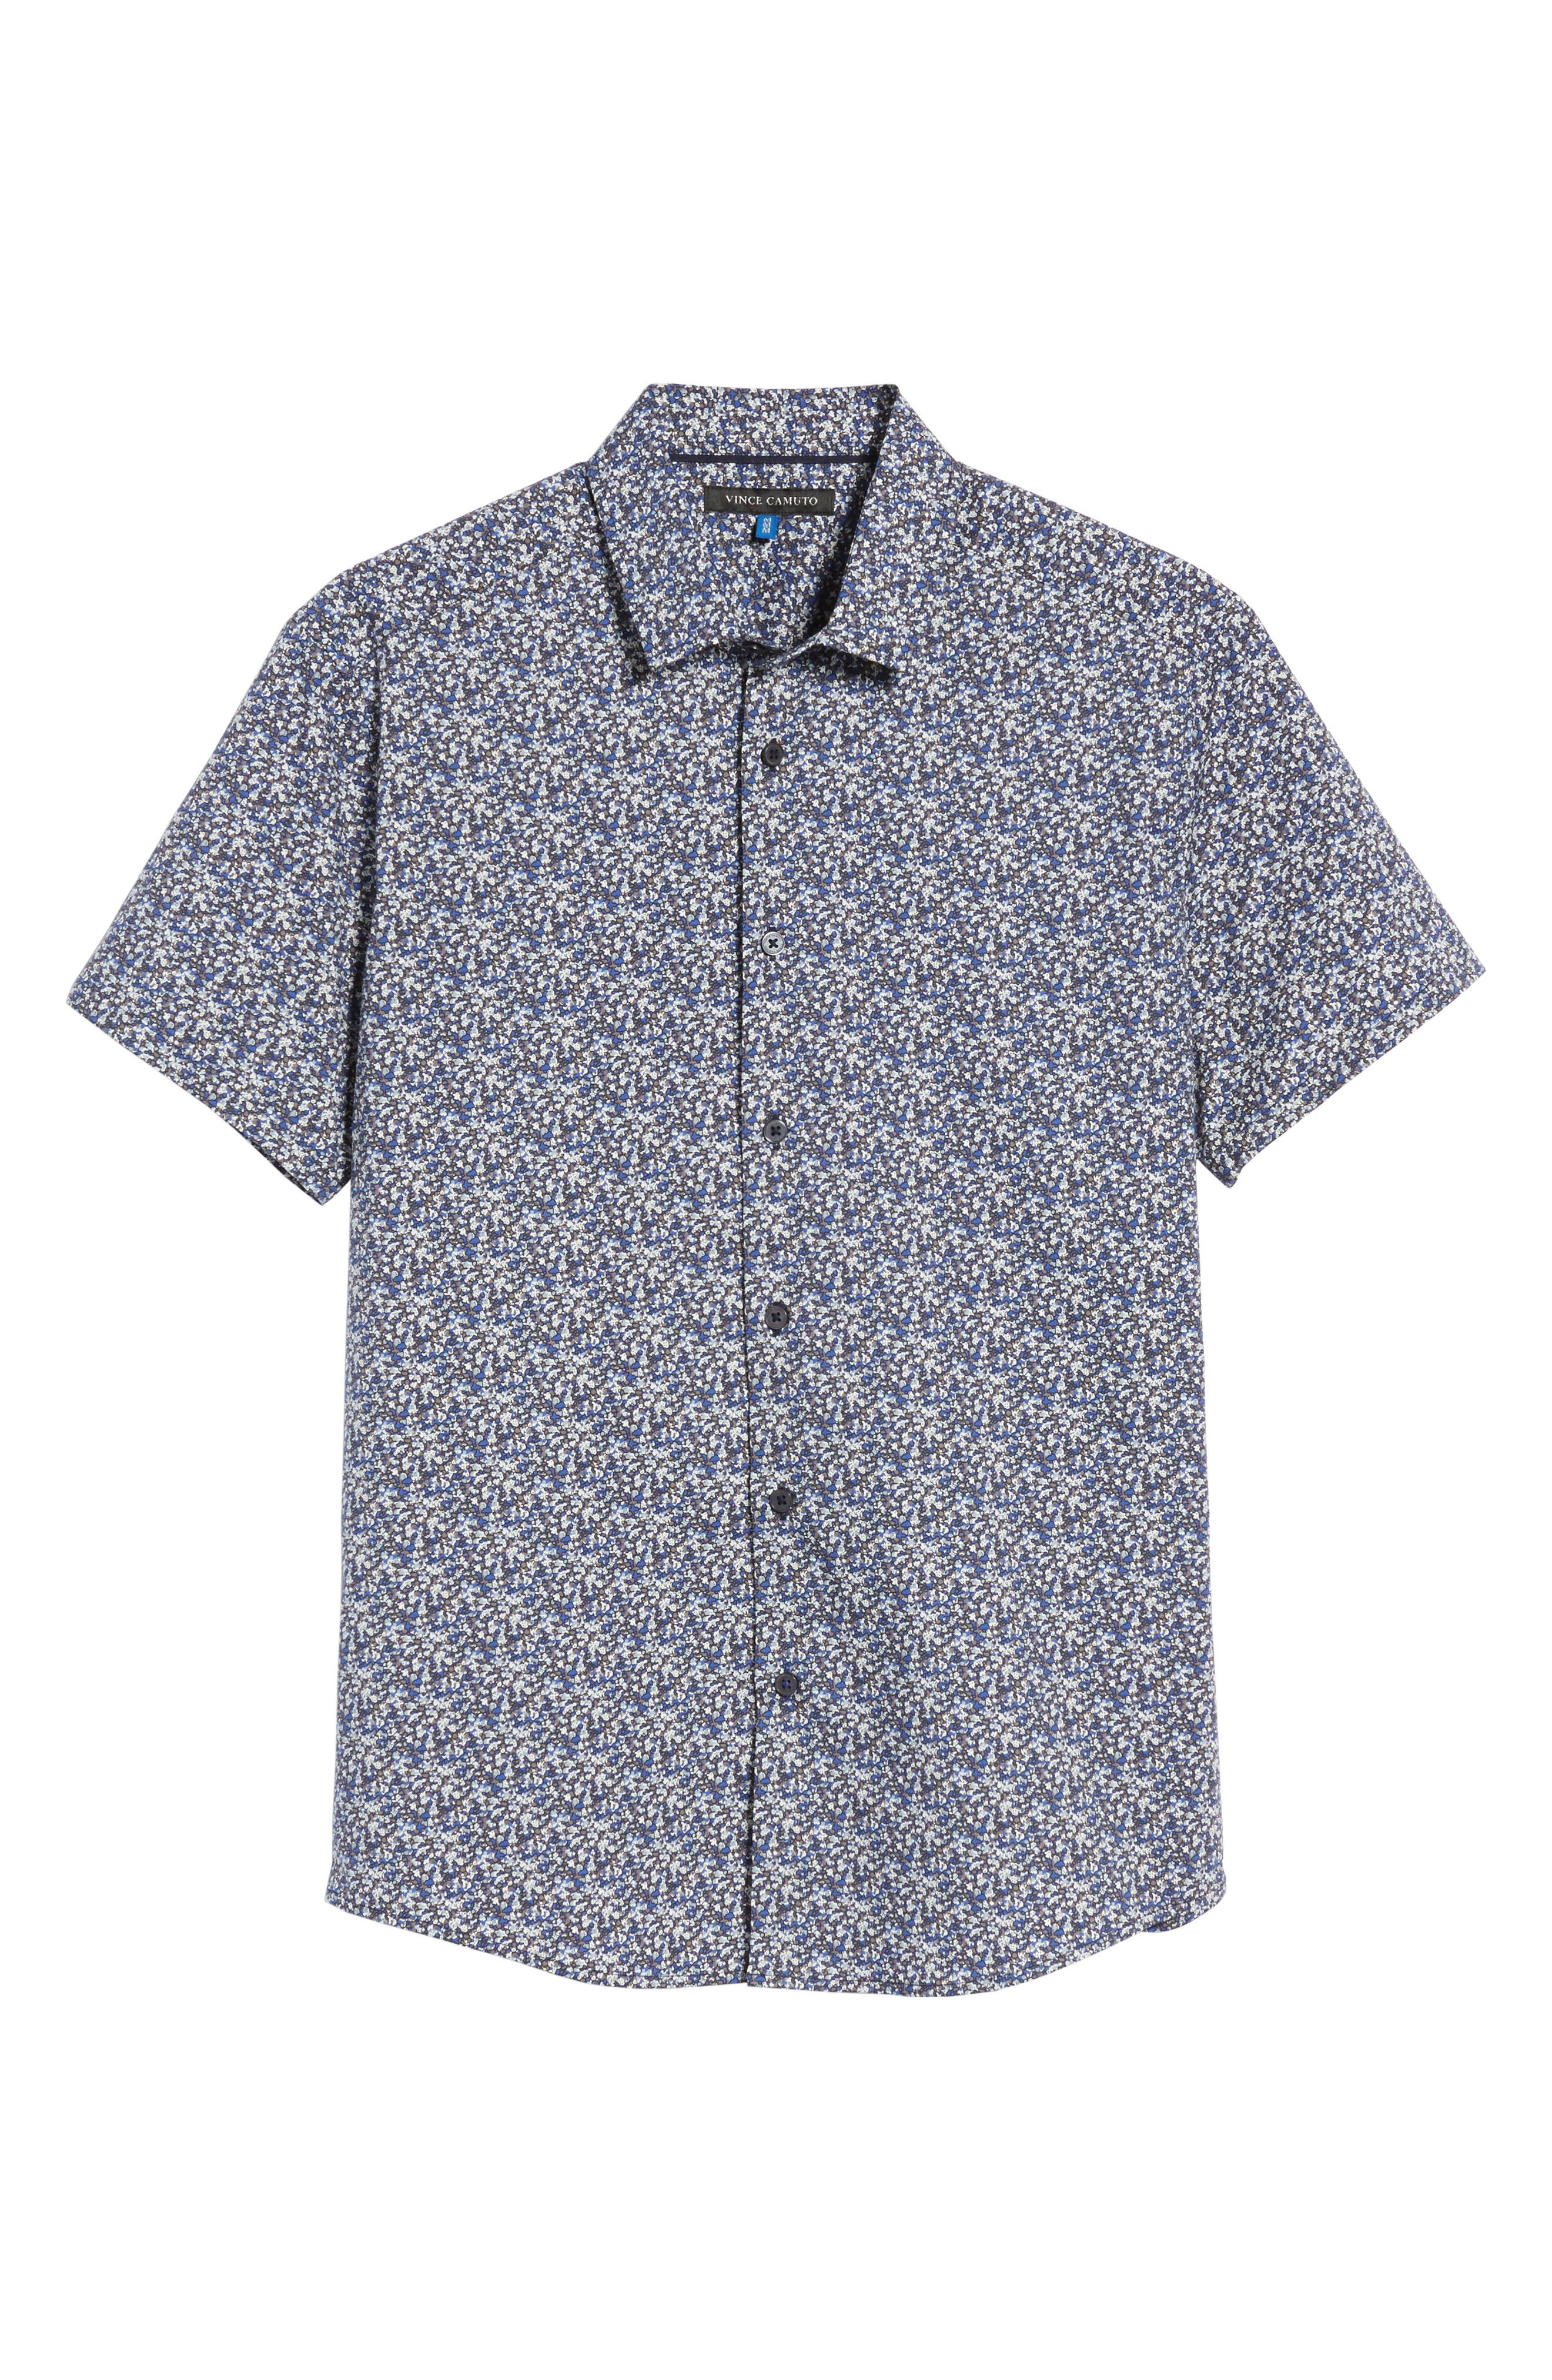 Slim Fit Print Sport Shirt,                             Alternate thumbnail 6, color,                             Blue Abstract Floral